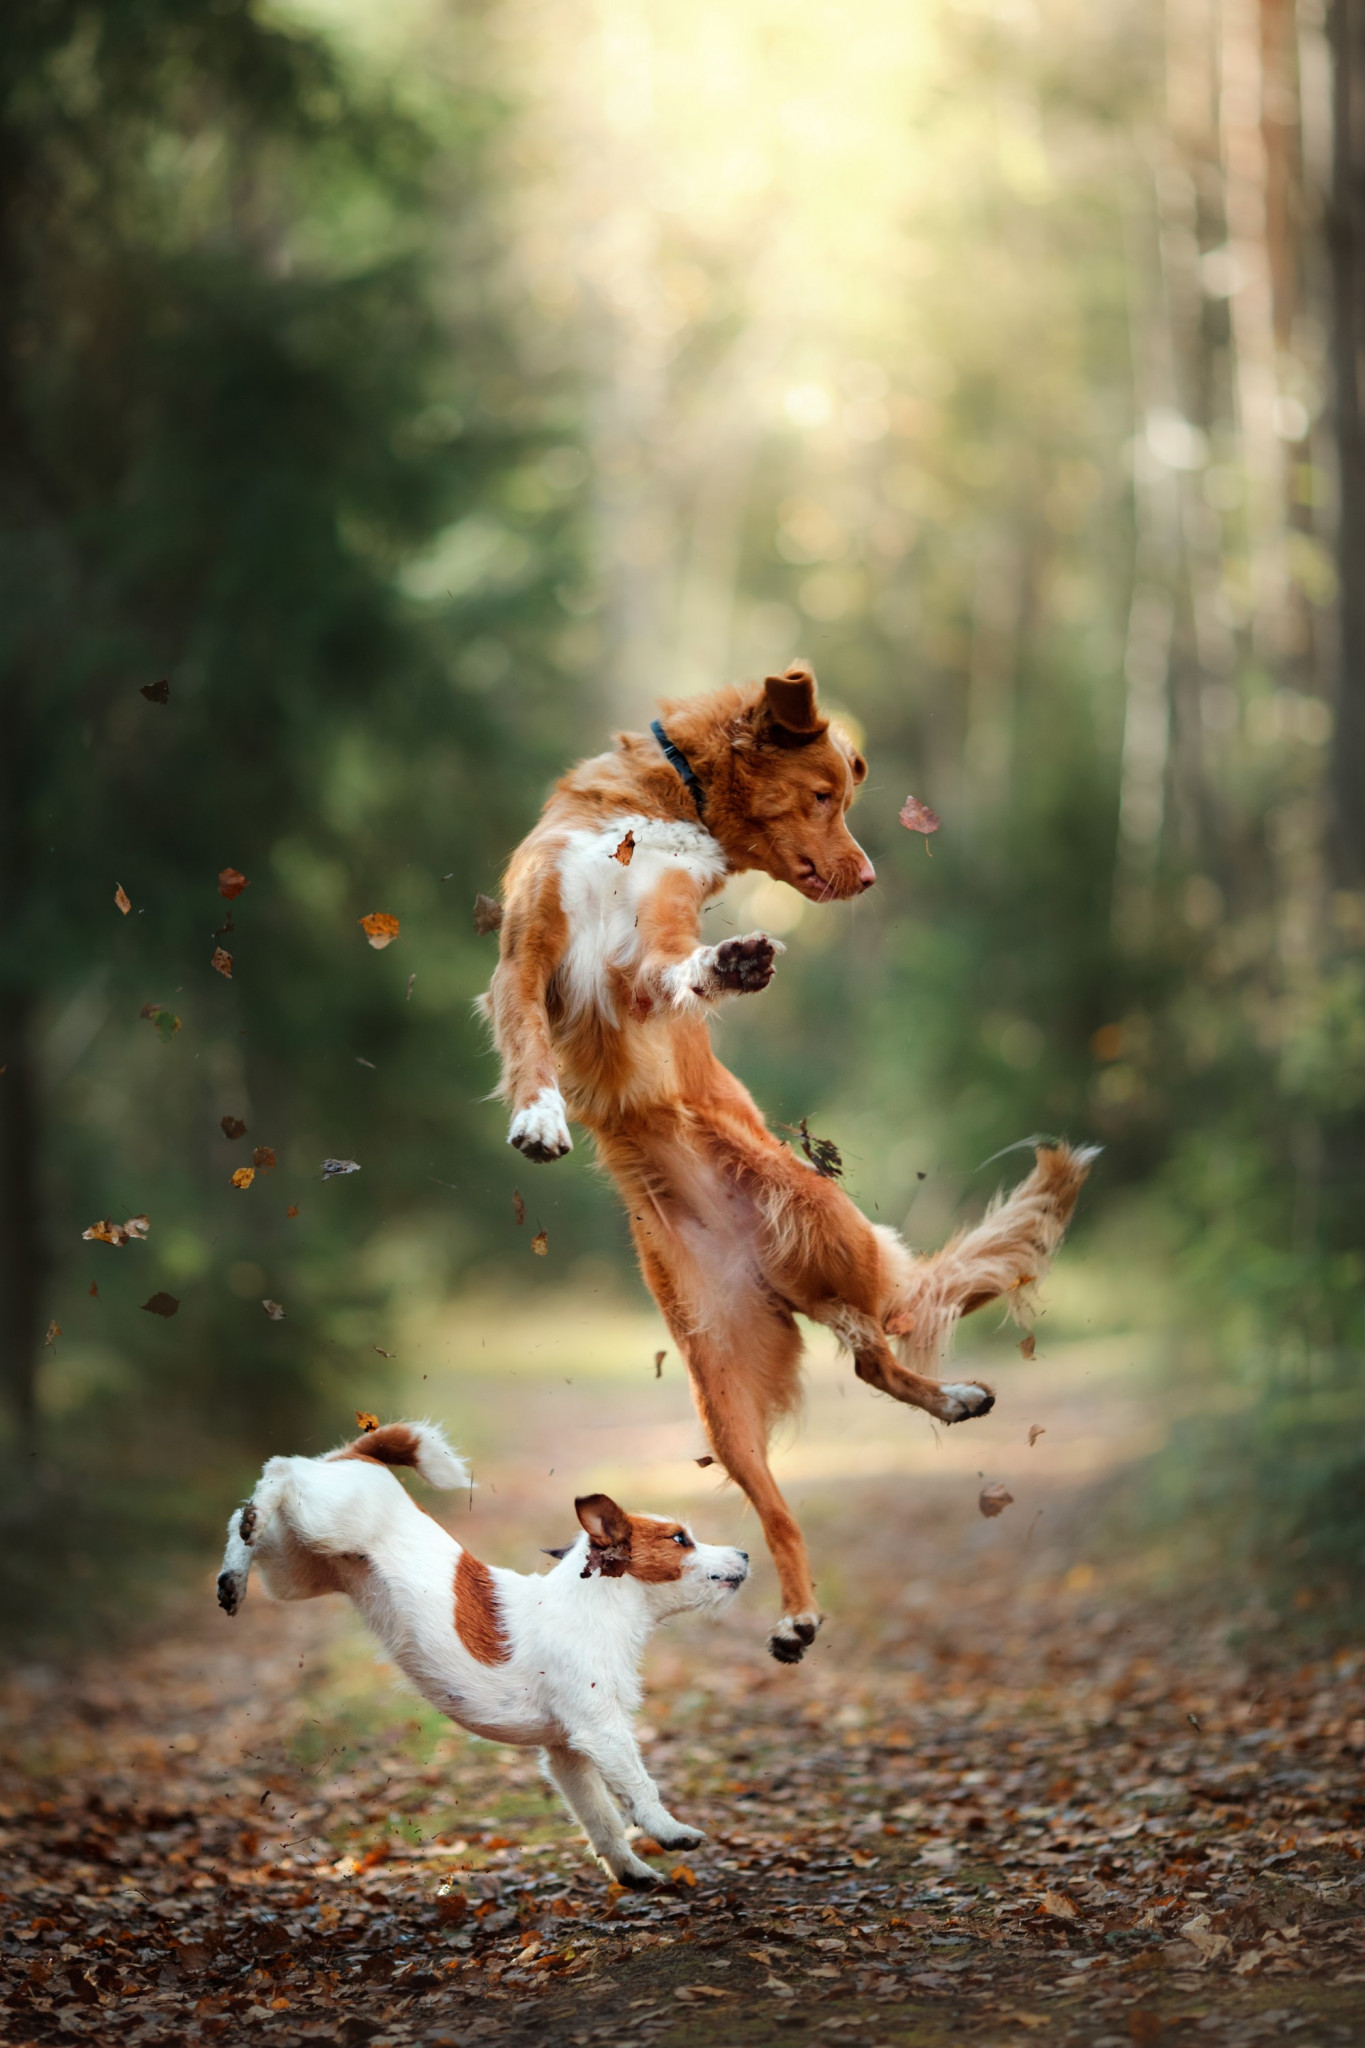 Happy dogs jumping together